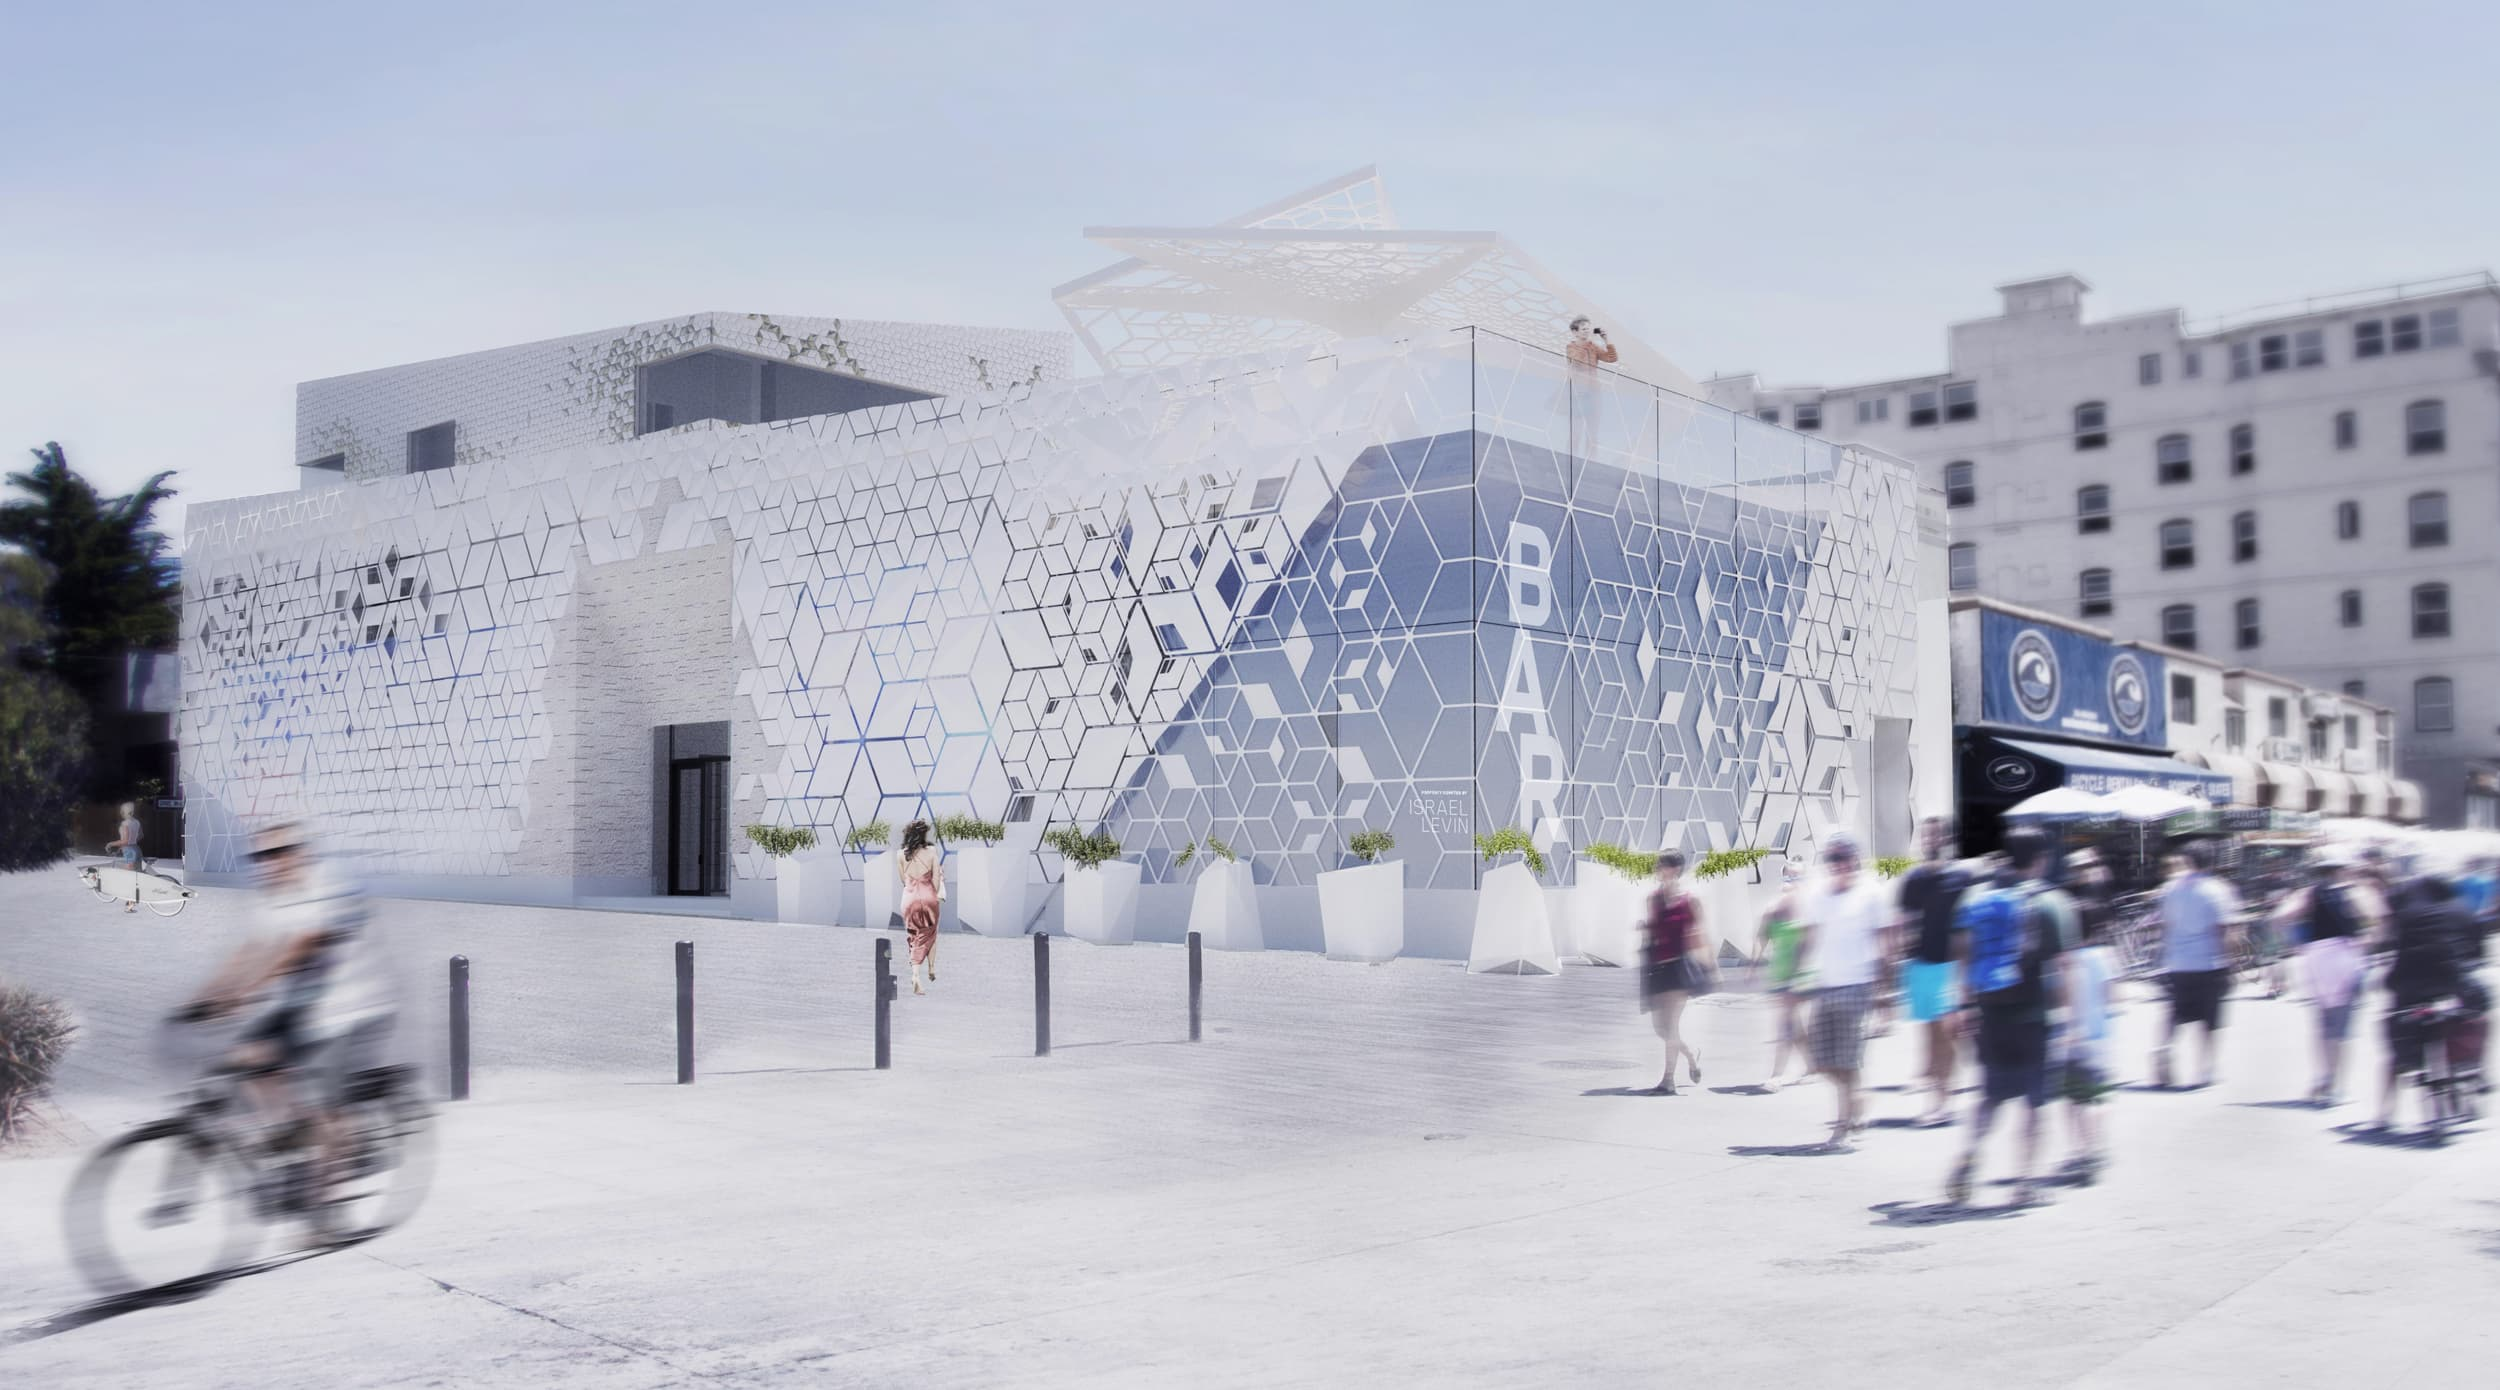 Day time rendering of The BAR Center at the Beach in Venice, California